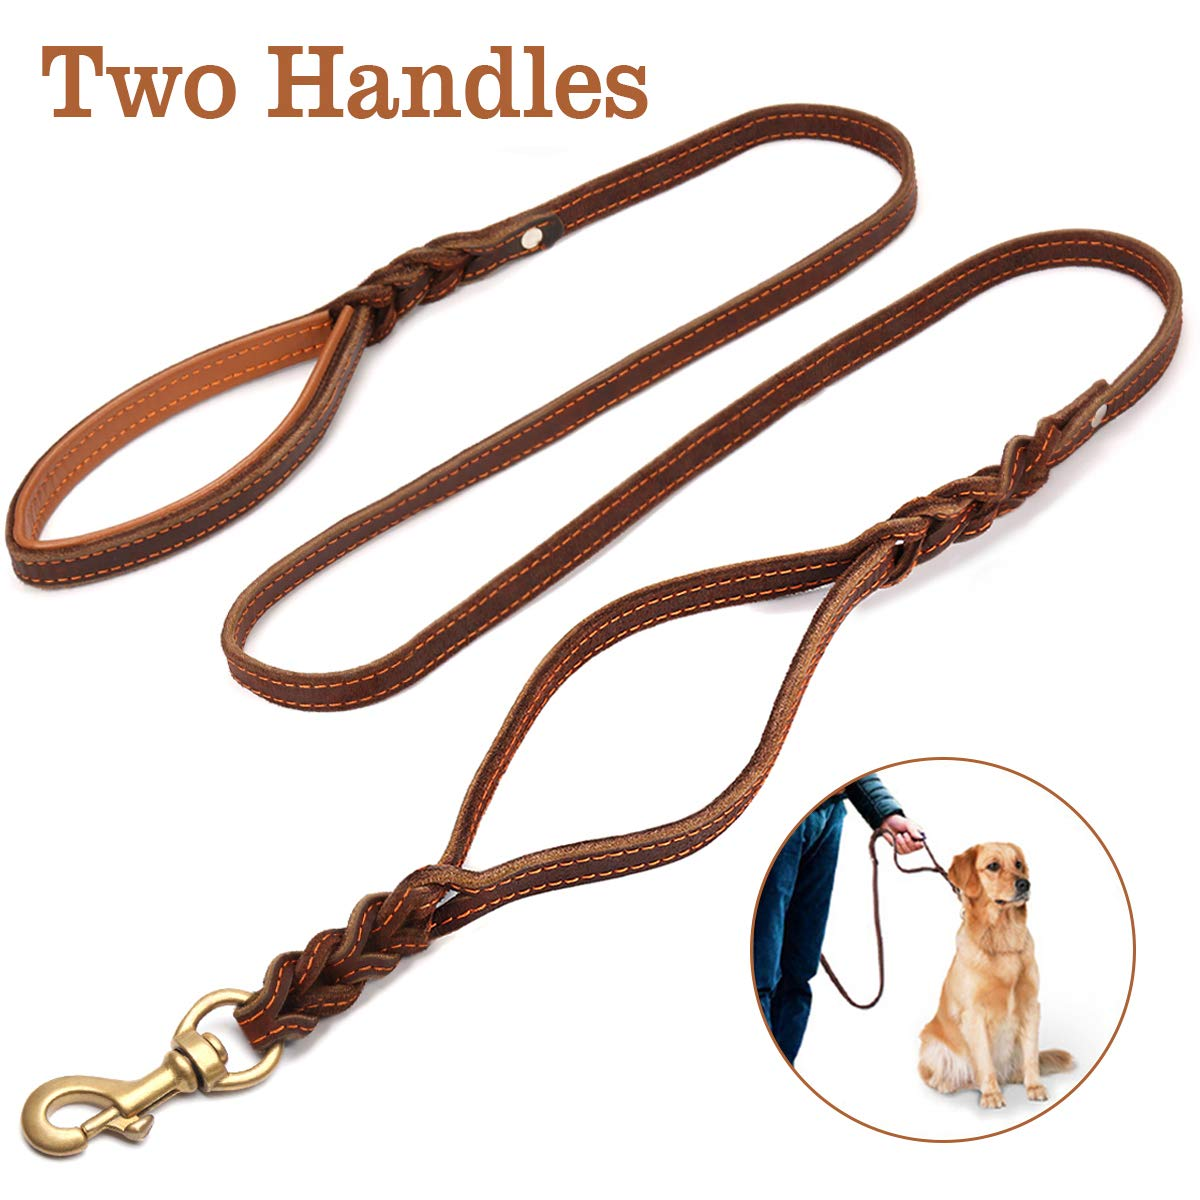 6FT FOCUSPET Heavy Duty Leather Dog Leash with 2 Handles,Padded Traffic Handle for Extra Control,6Ft Dog Training Walking Leashes for Medium Large Dogs